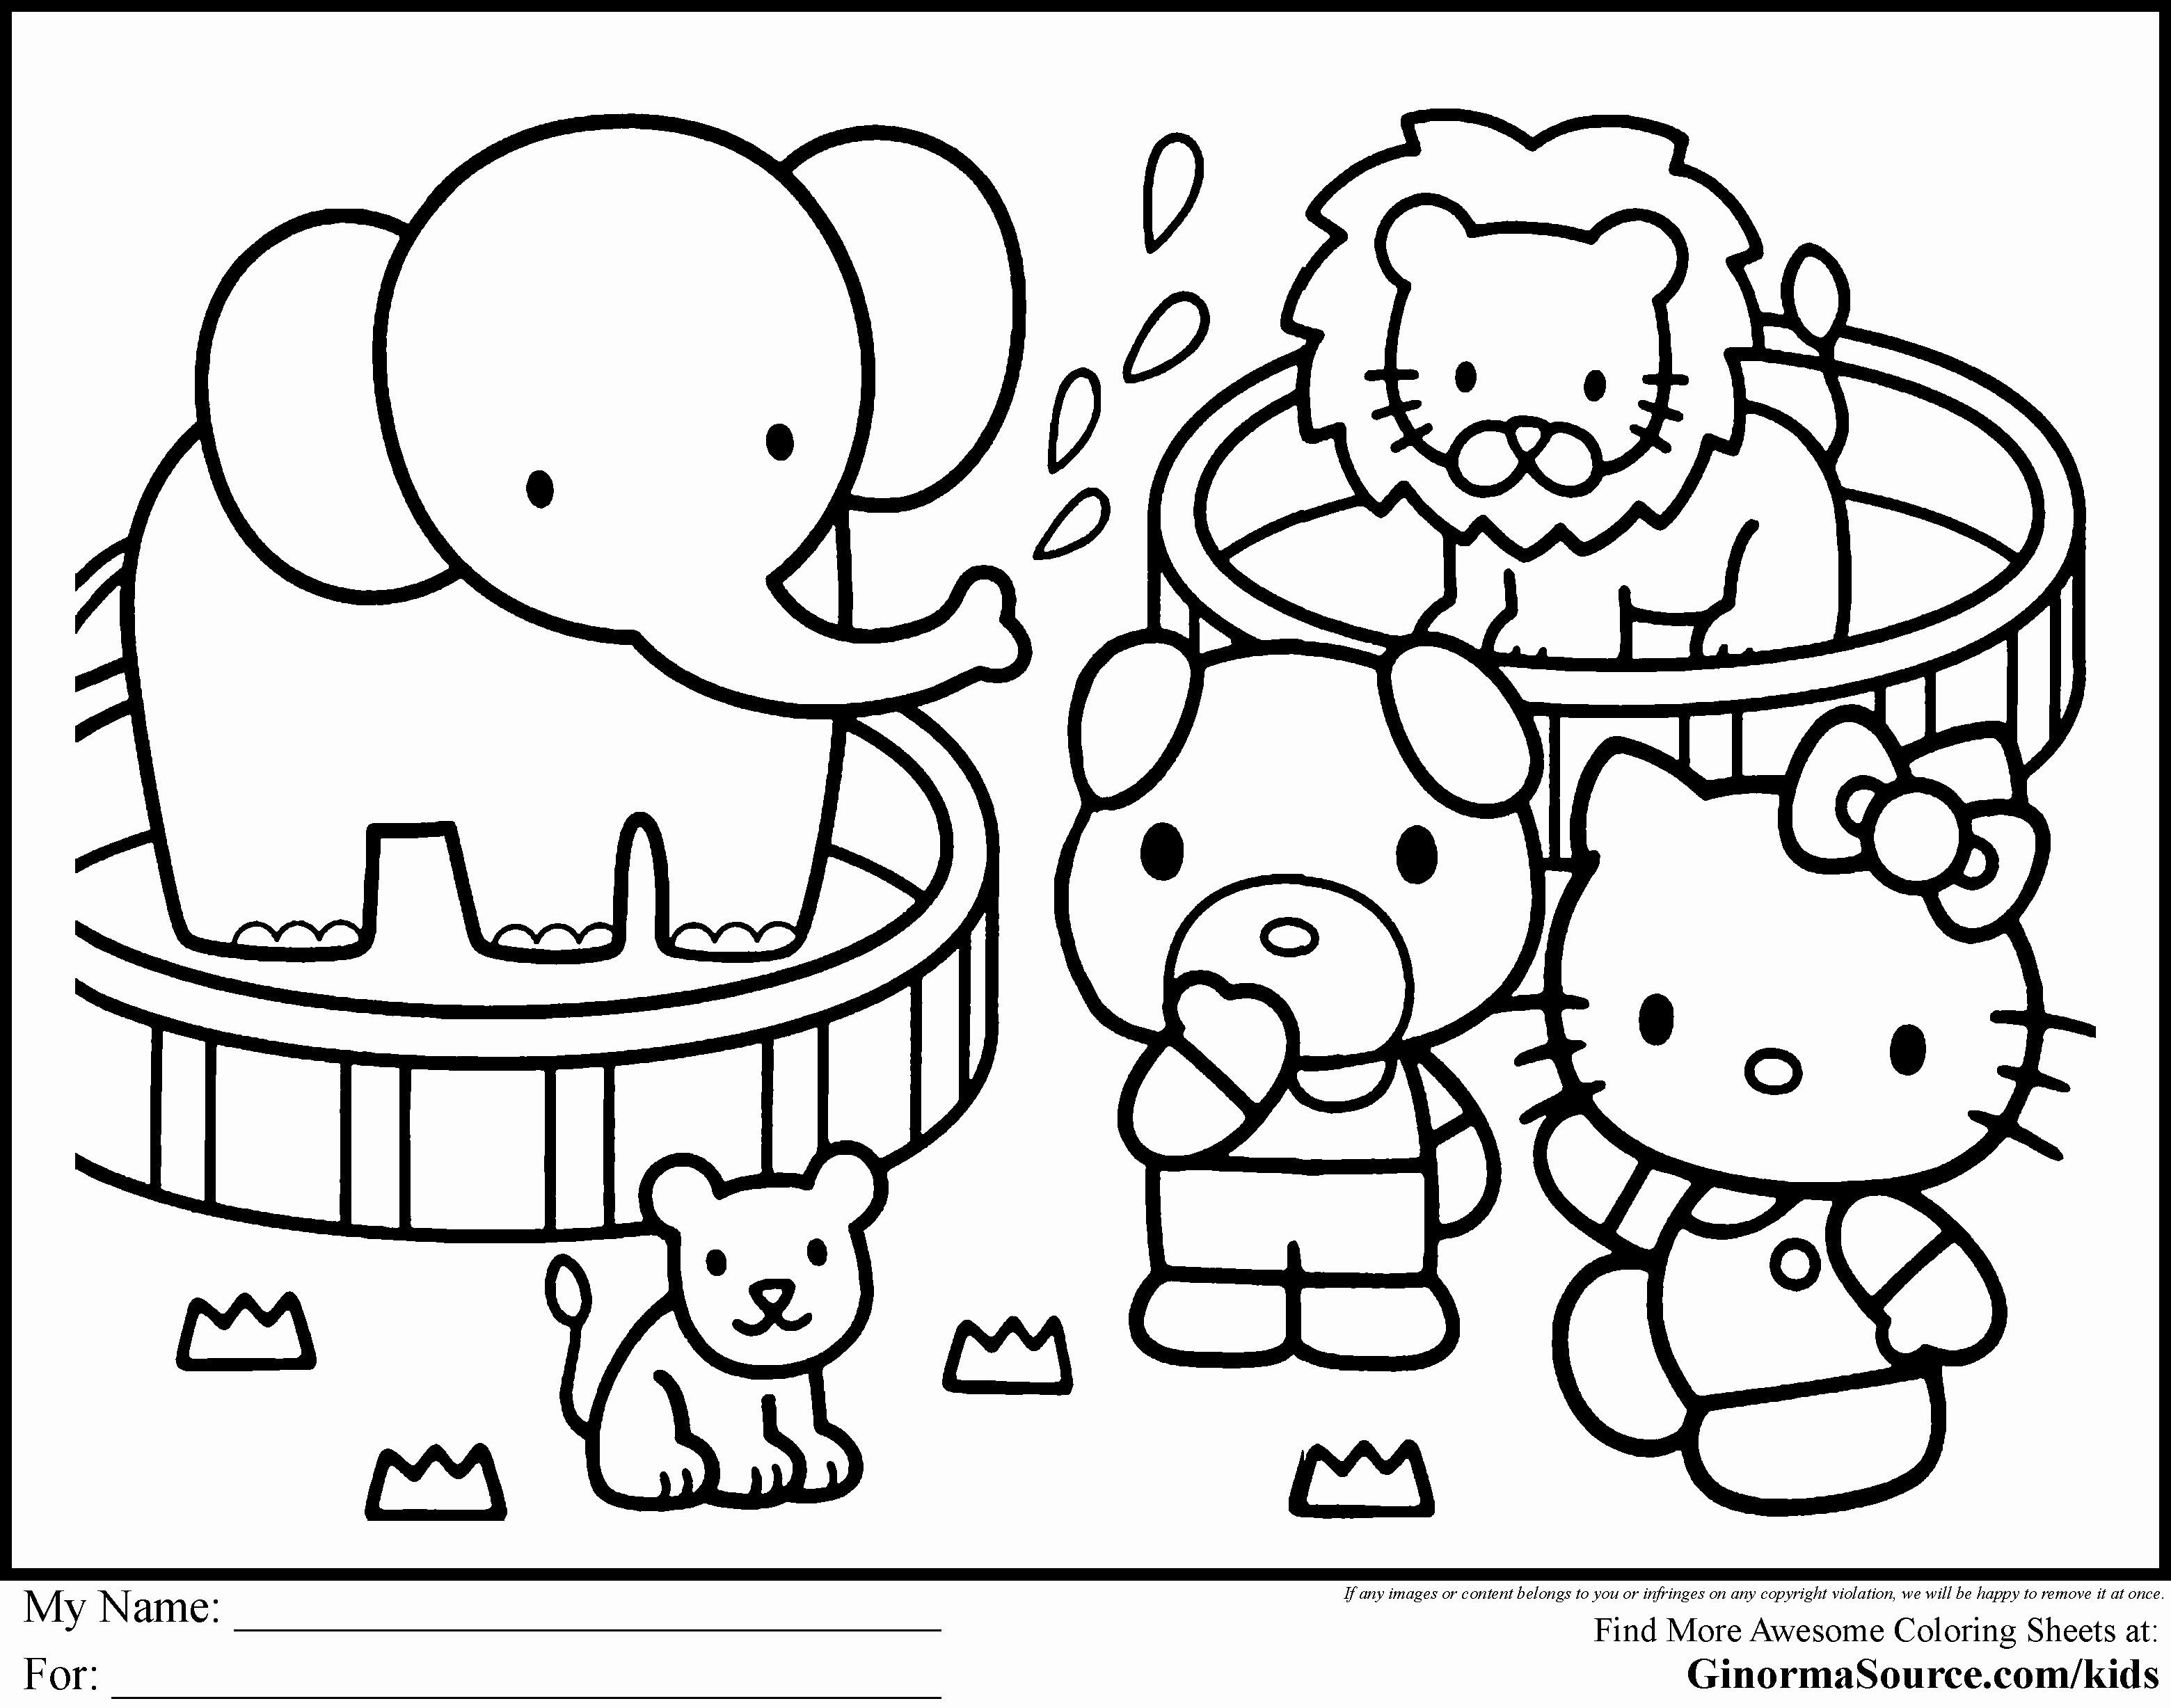 Coloring Pages For Preschoolers Pdf Lovely Free Coloring Pages Pdf Format Hello Kitty Colouring Pages Kitty Coloring Cat Coloring Book